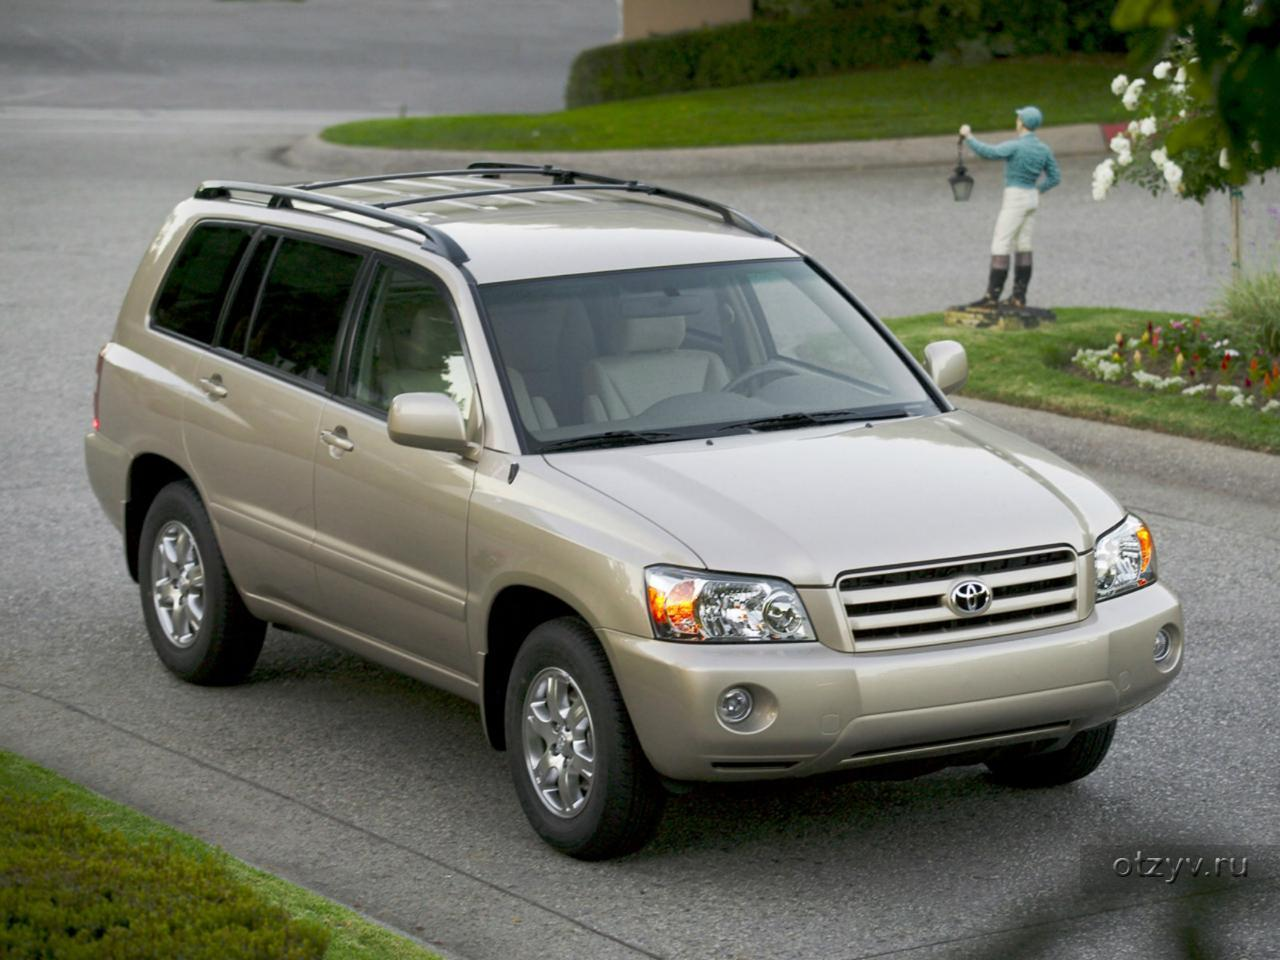 Toyota Highlander Review - Research New & Used Toyota ...